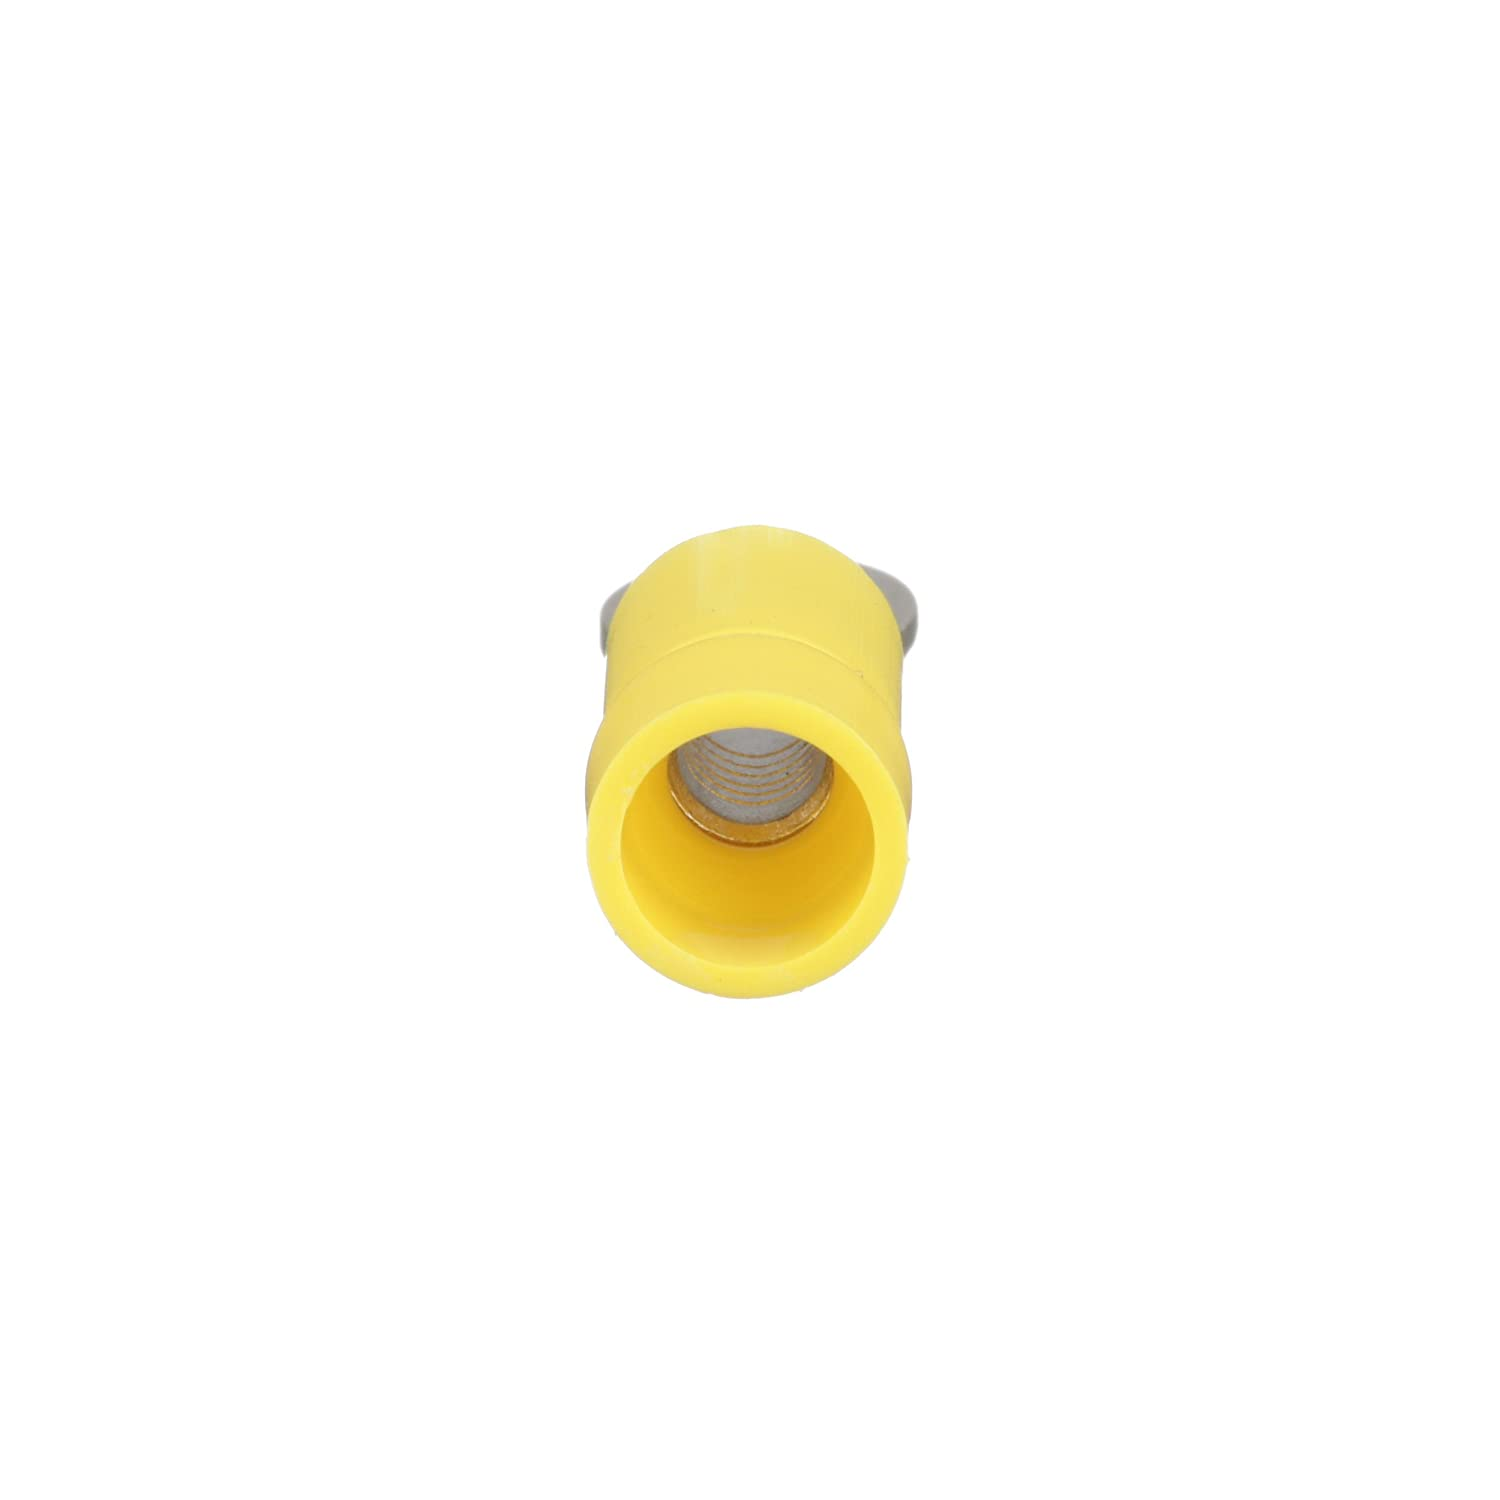 1//4 Stud Size Panduit PV14-14R-M Ring Terminal Vinyl Insulated 1//4 Stud Size Funnel Entry 16-14 AWG